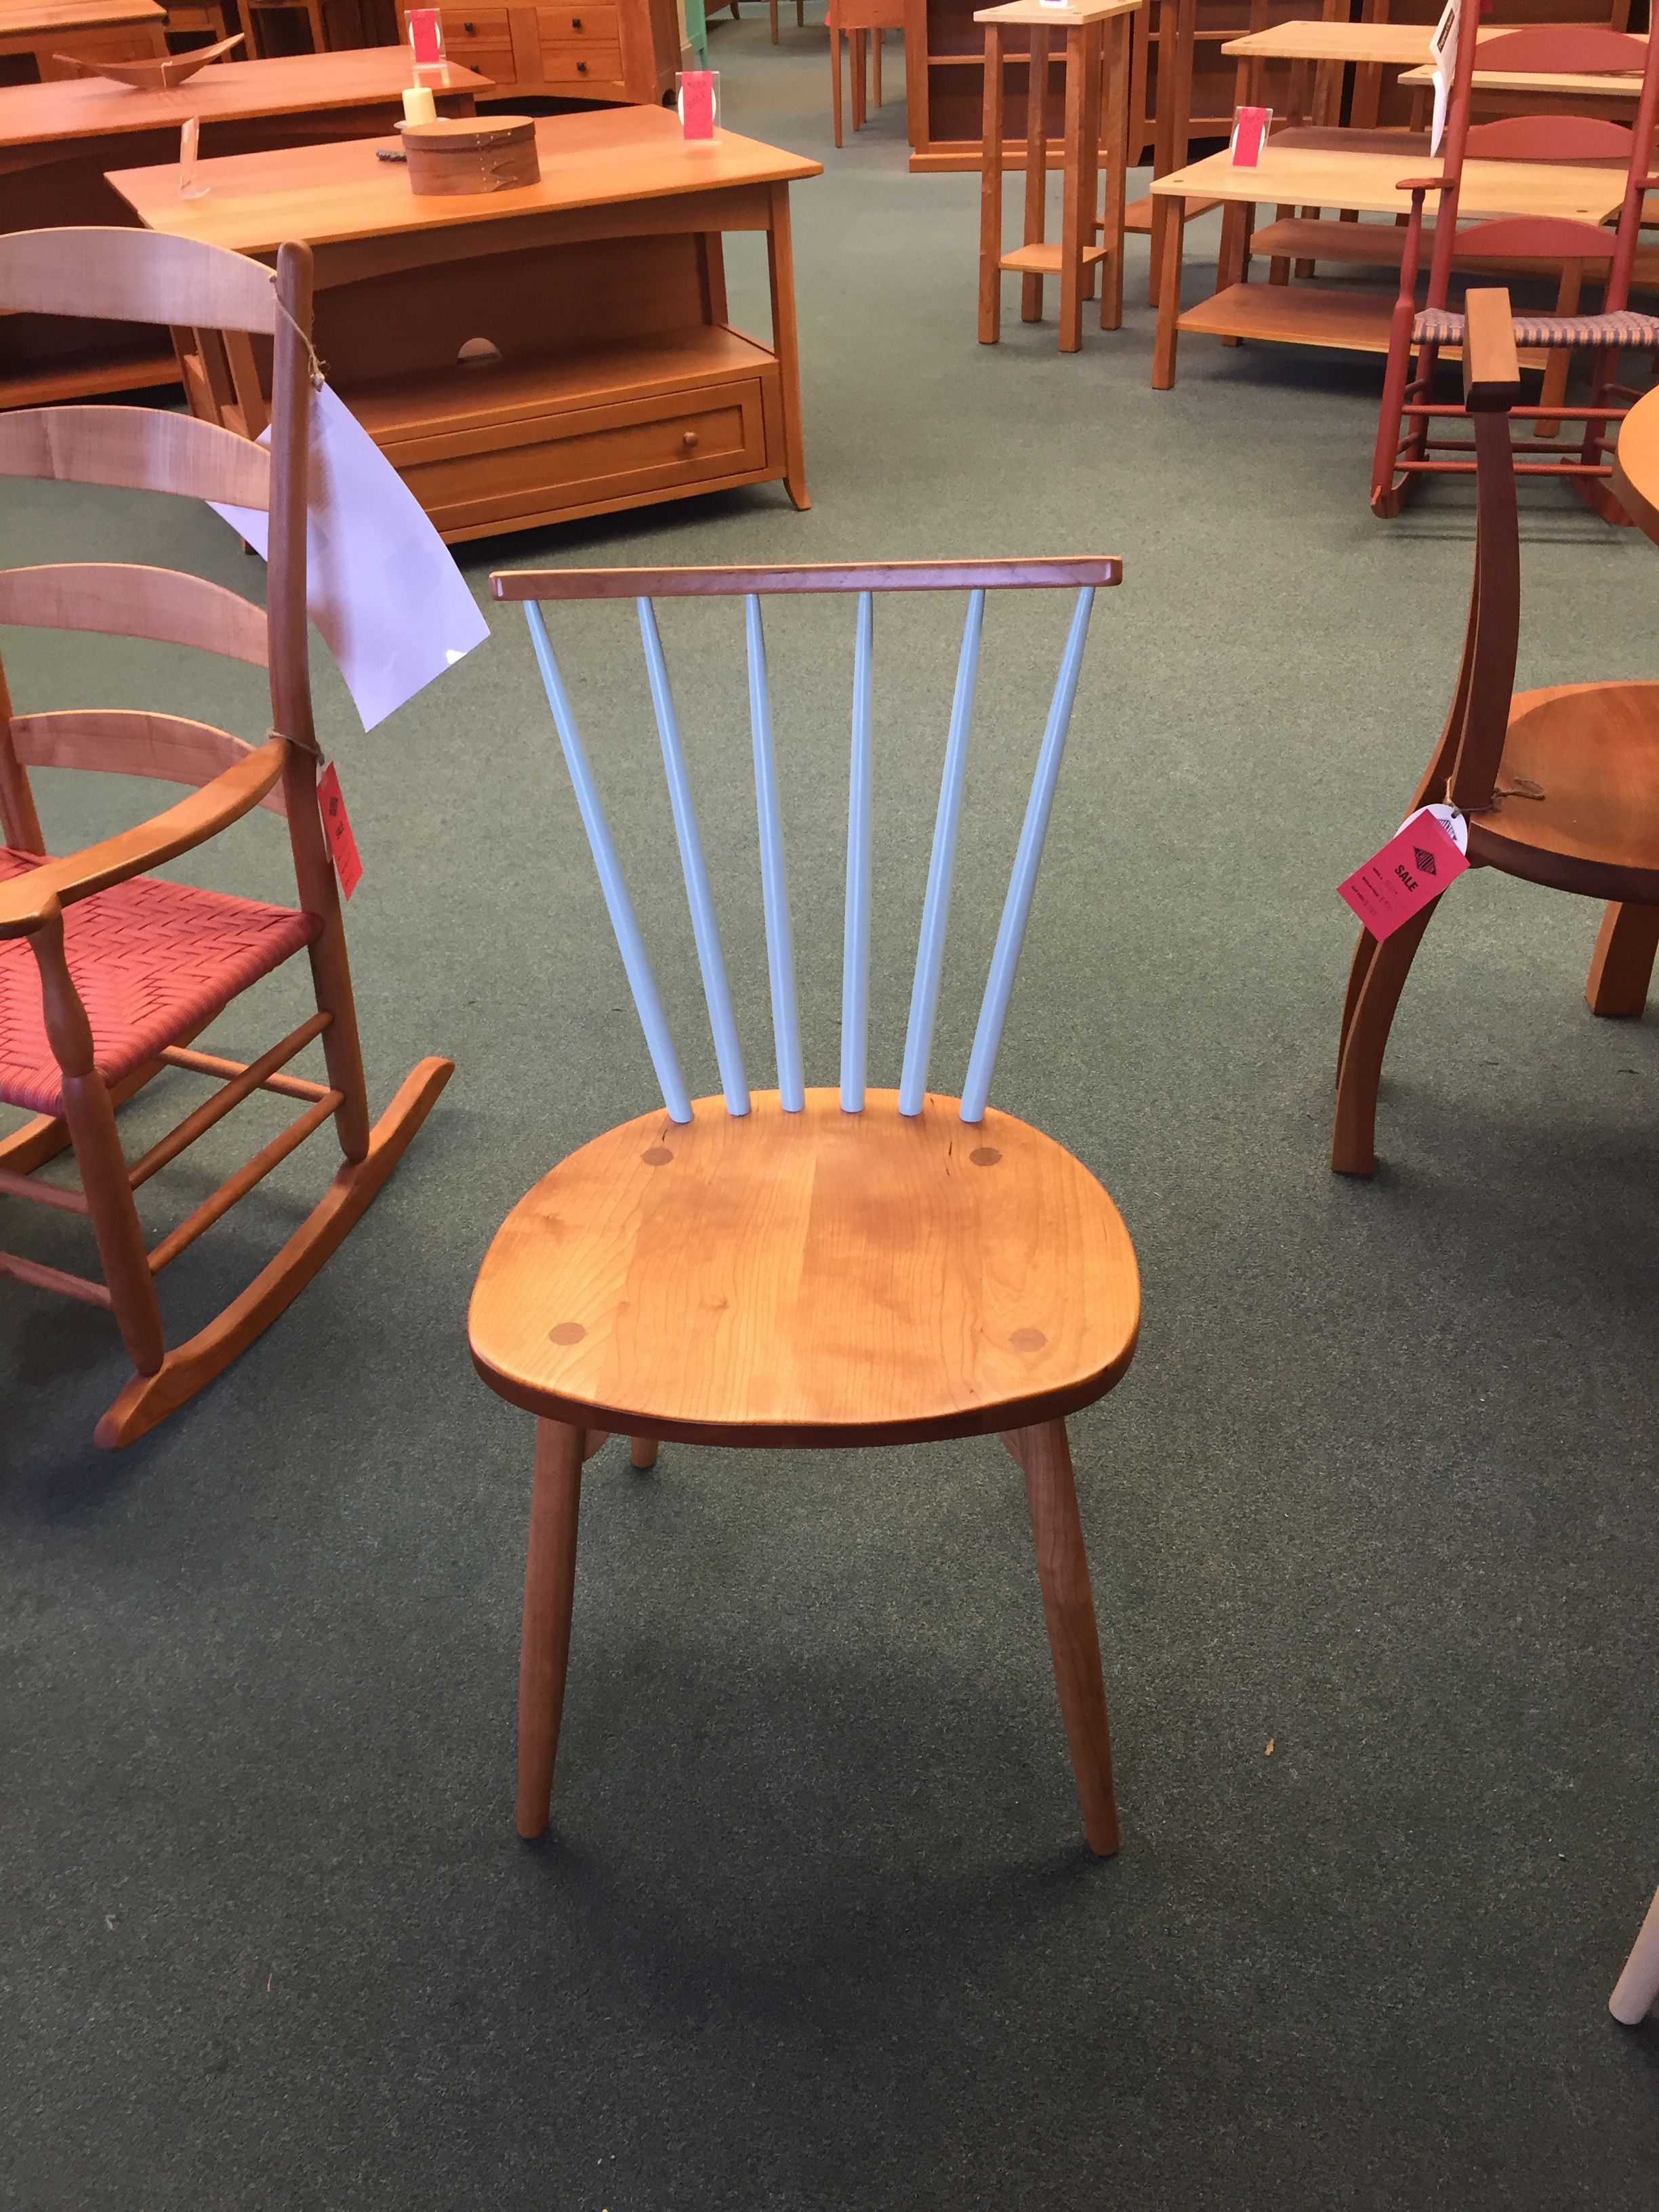 Prototype Of Modern Spindle Chair At Chilton Furniture Of Maine. I Love The  Top Half